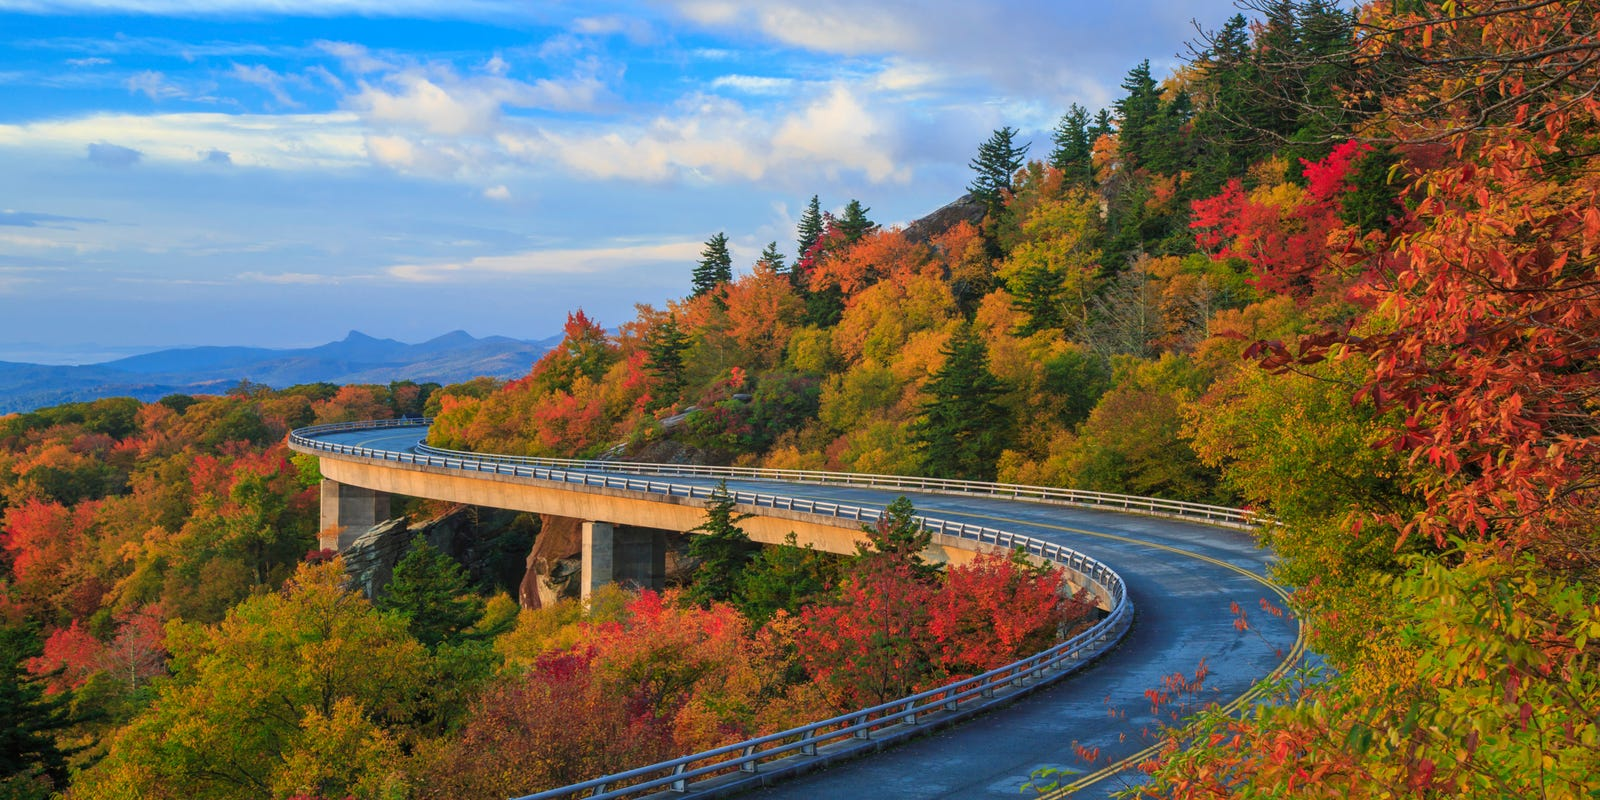 Blue Ridge Parkway: A nearly 469-mile photo op